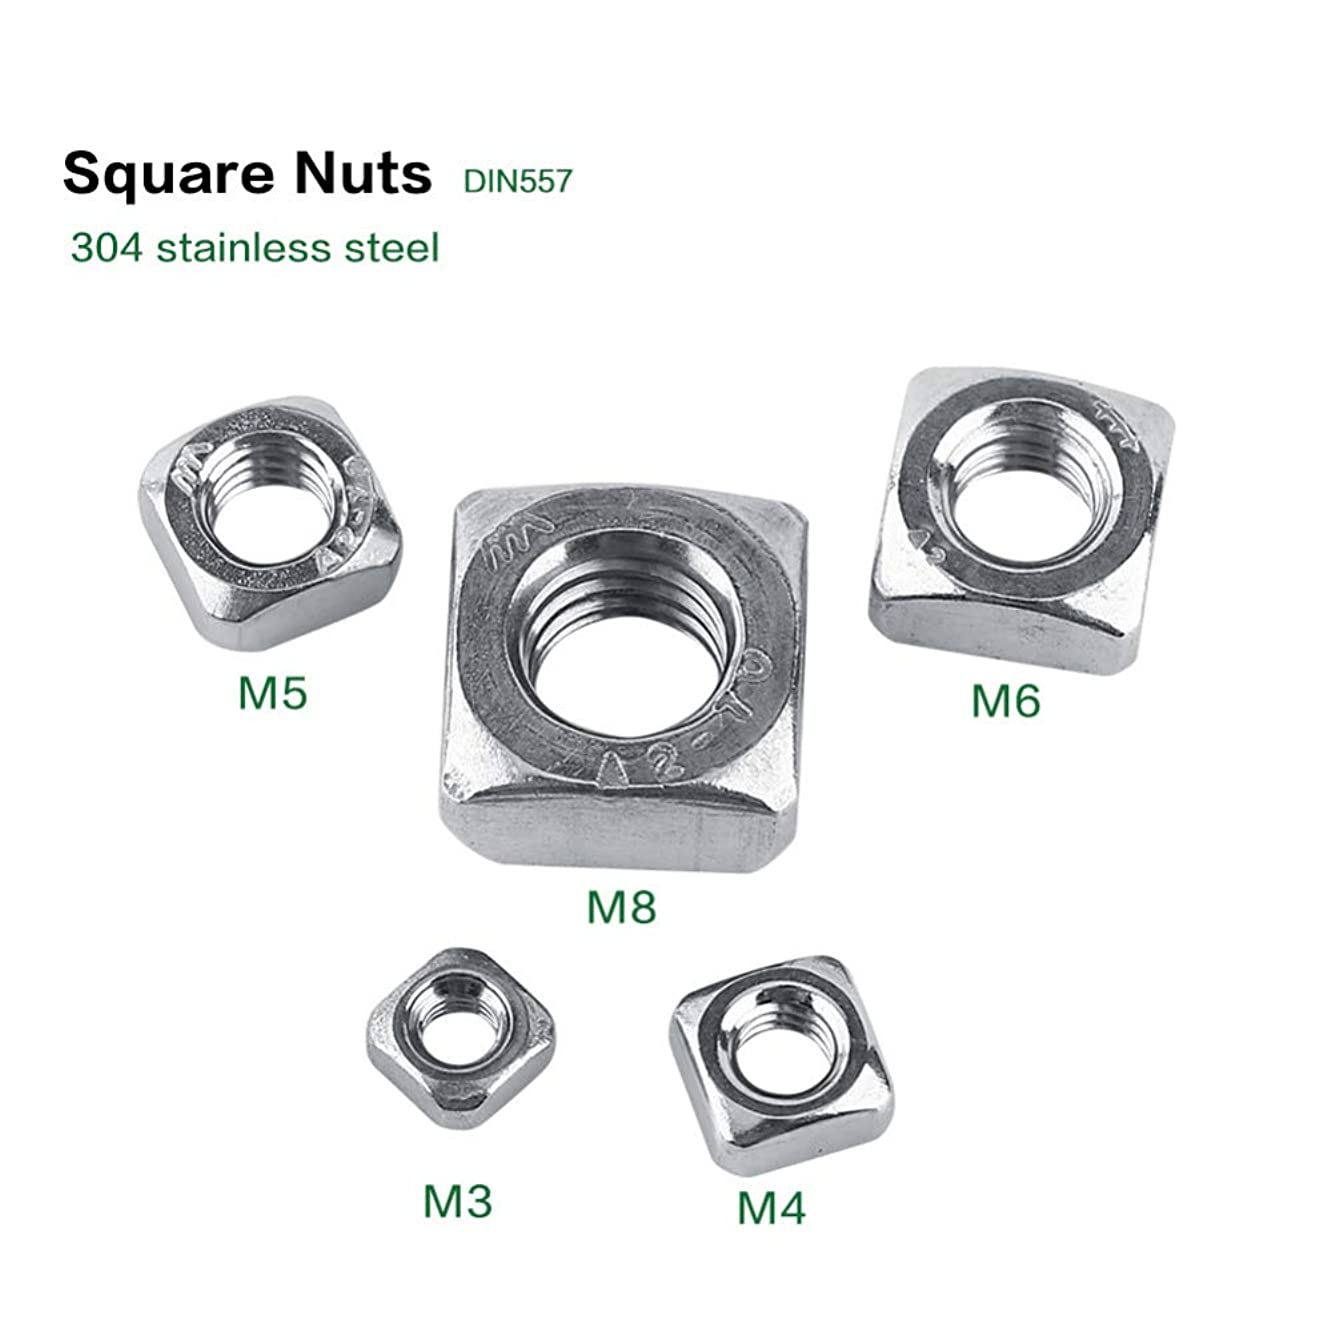 Nuts M3-M8 DIN557 Metric Thread Stainless Steel SS304 Square Nut Fastener Supply Screws Accessory - (Color: M3 100Pcs)